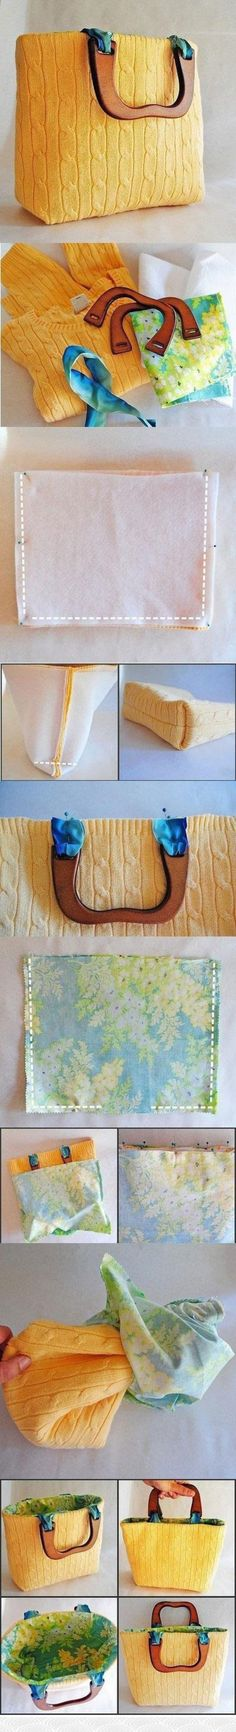 """Make a Sweater Better"" Purse Tutorial"